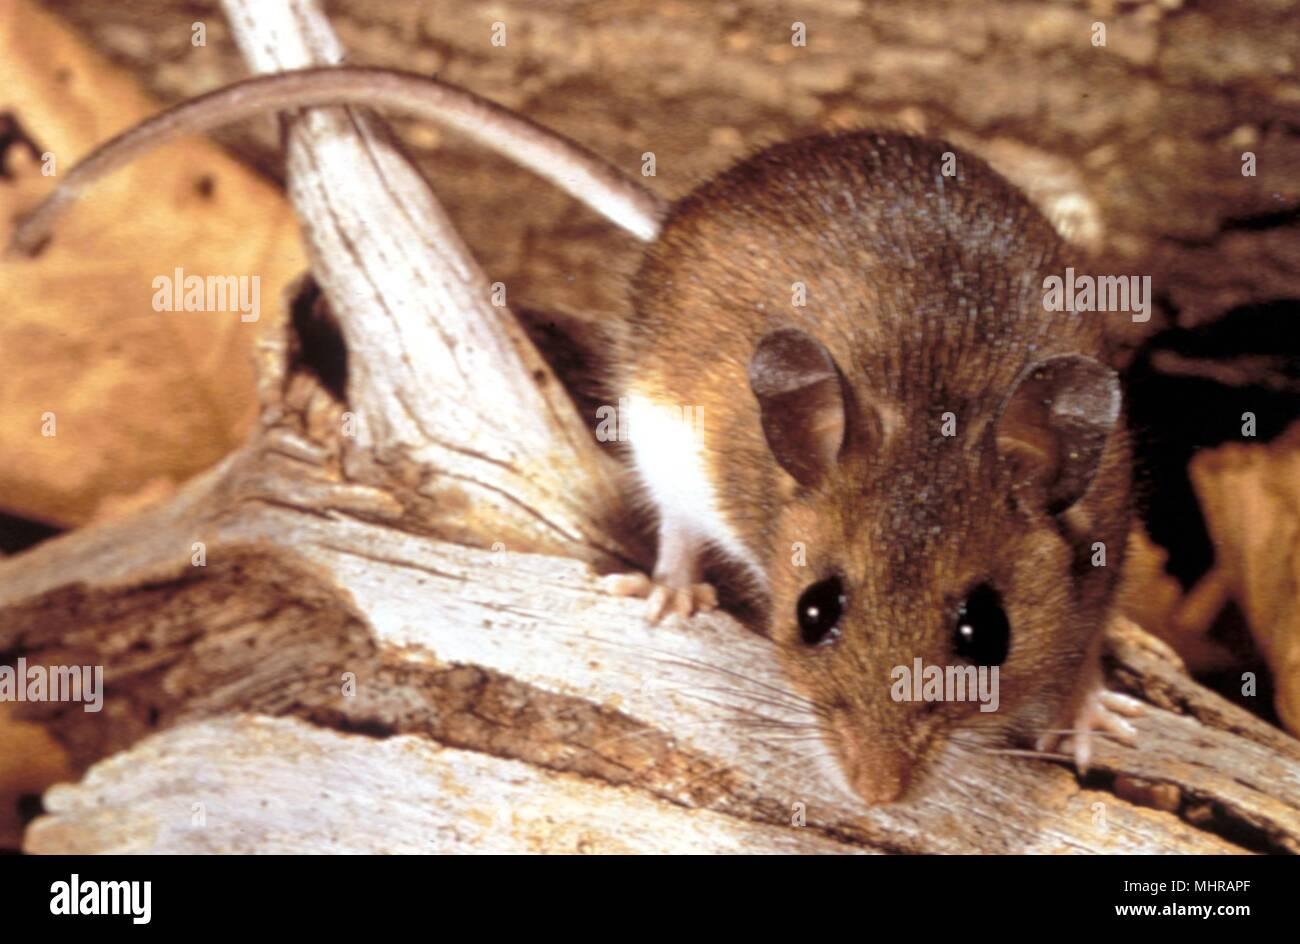 Deer mouse (Peromyscus maniculatus), a possible transmitter of the Hantavirus, 1990. Image courtesy Centers for Disease Control (CDC). () - Stock Image